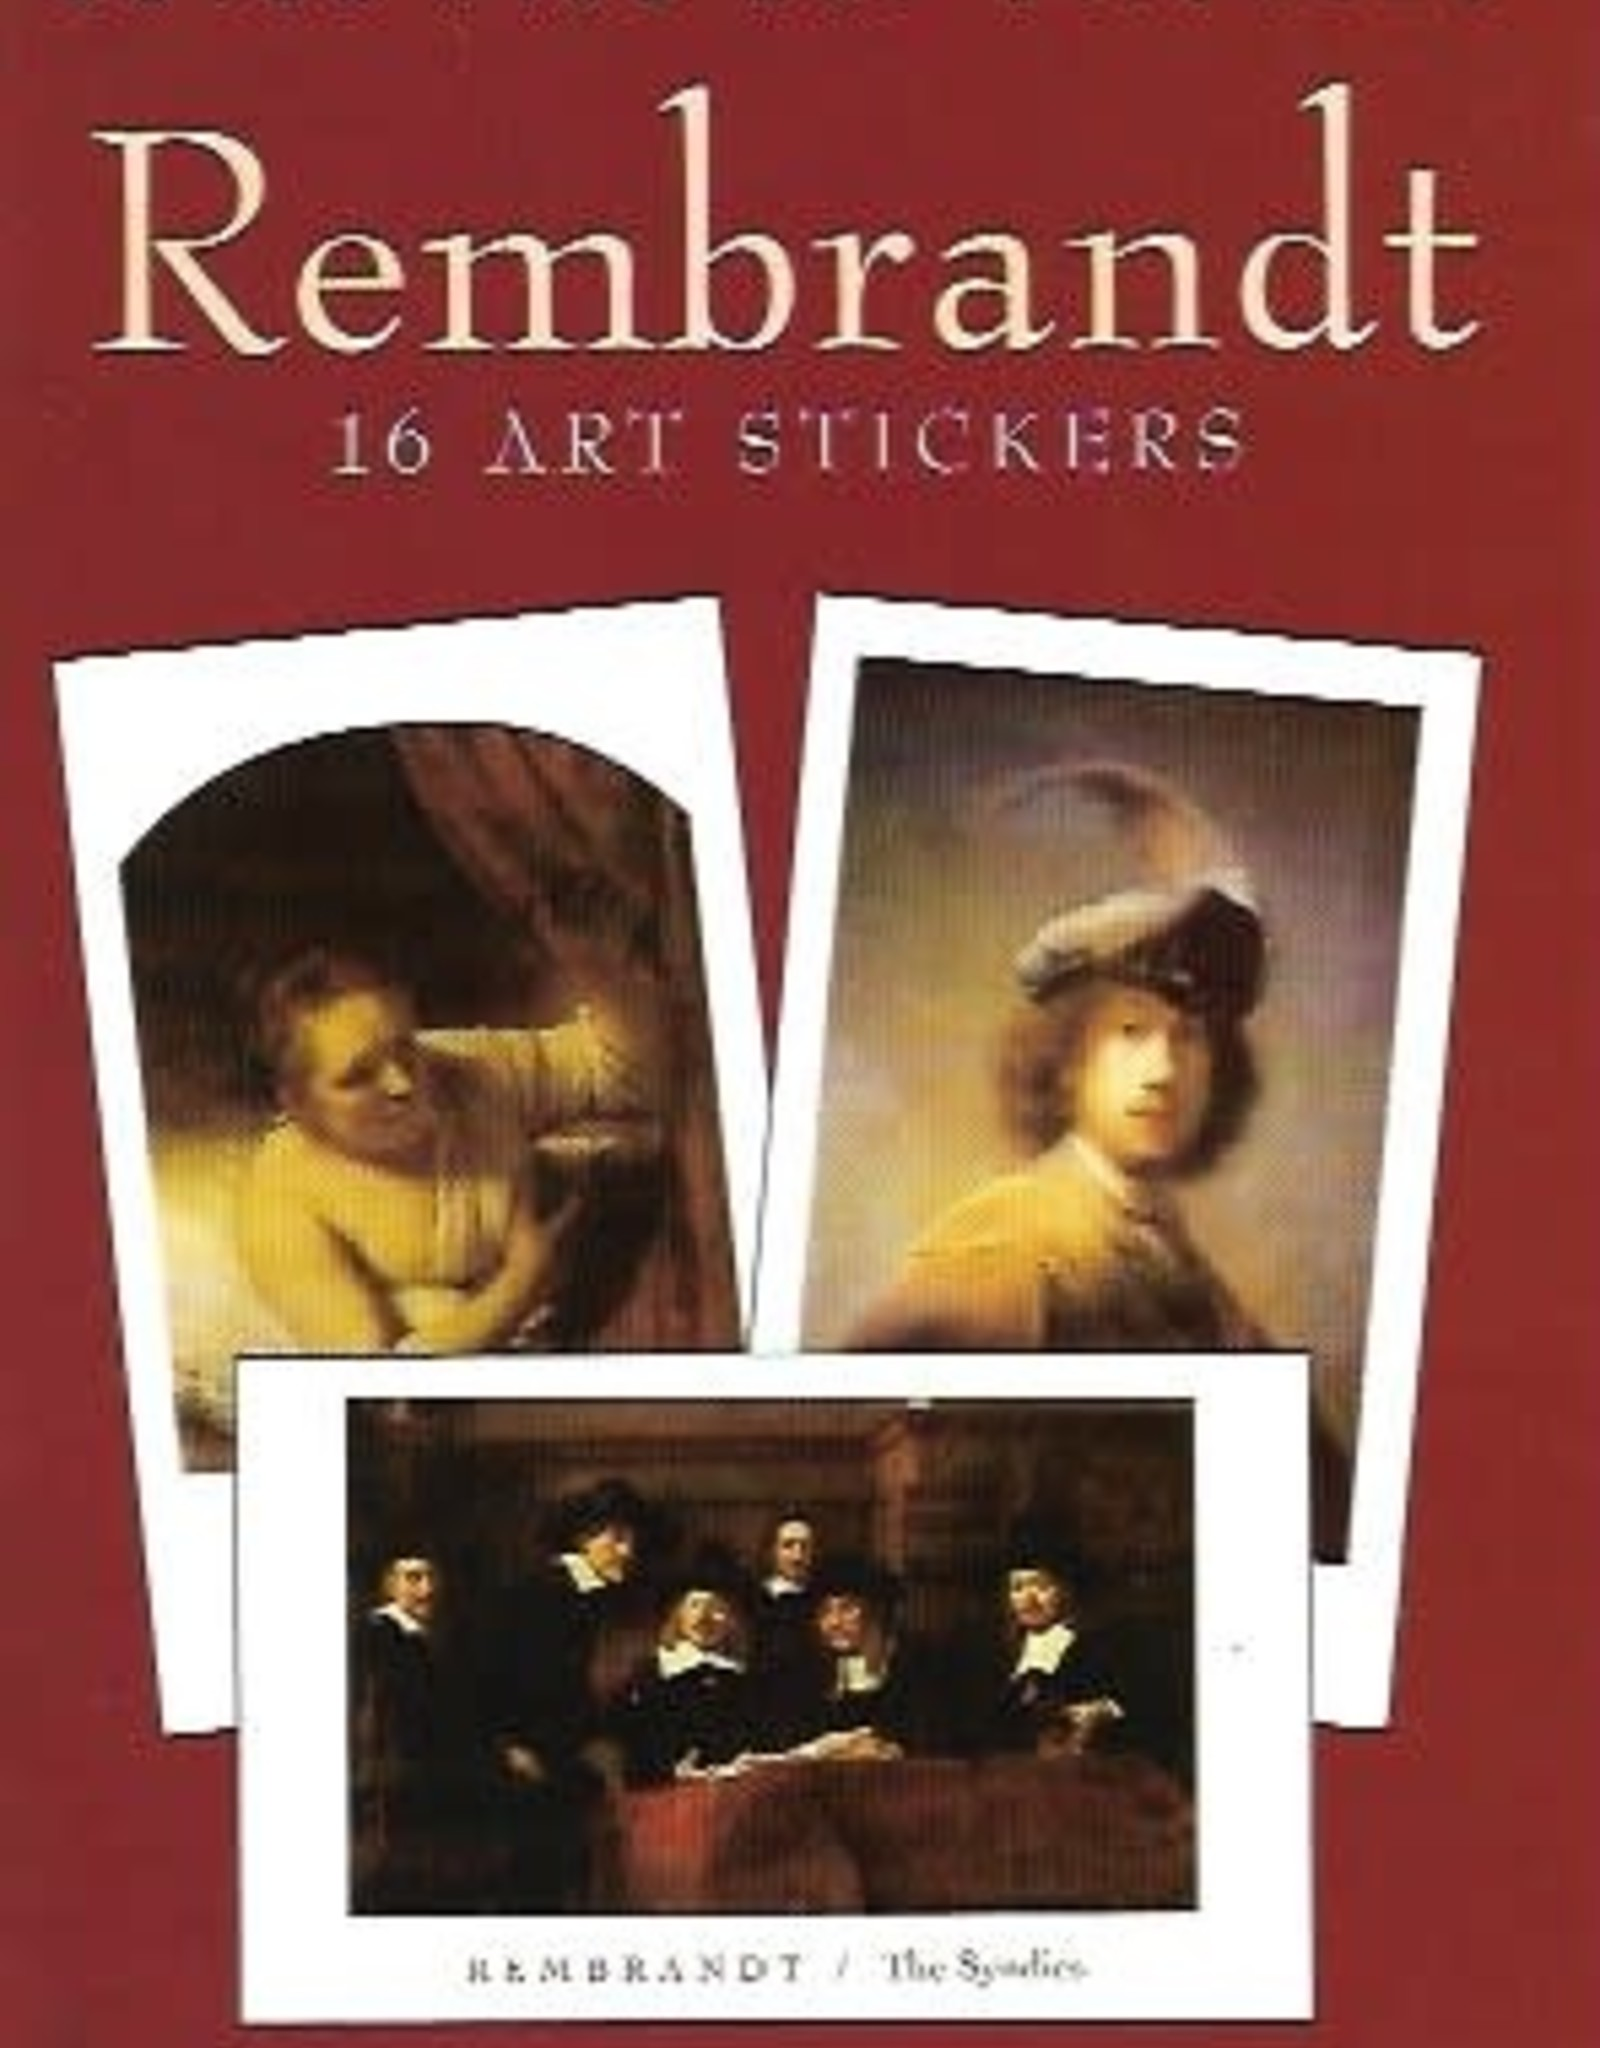 Rembrandt, 16 Art Stickers